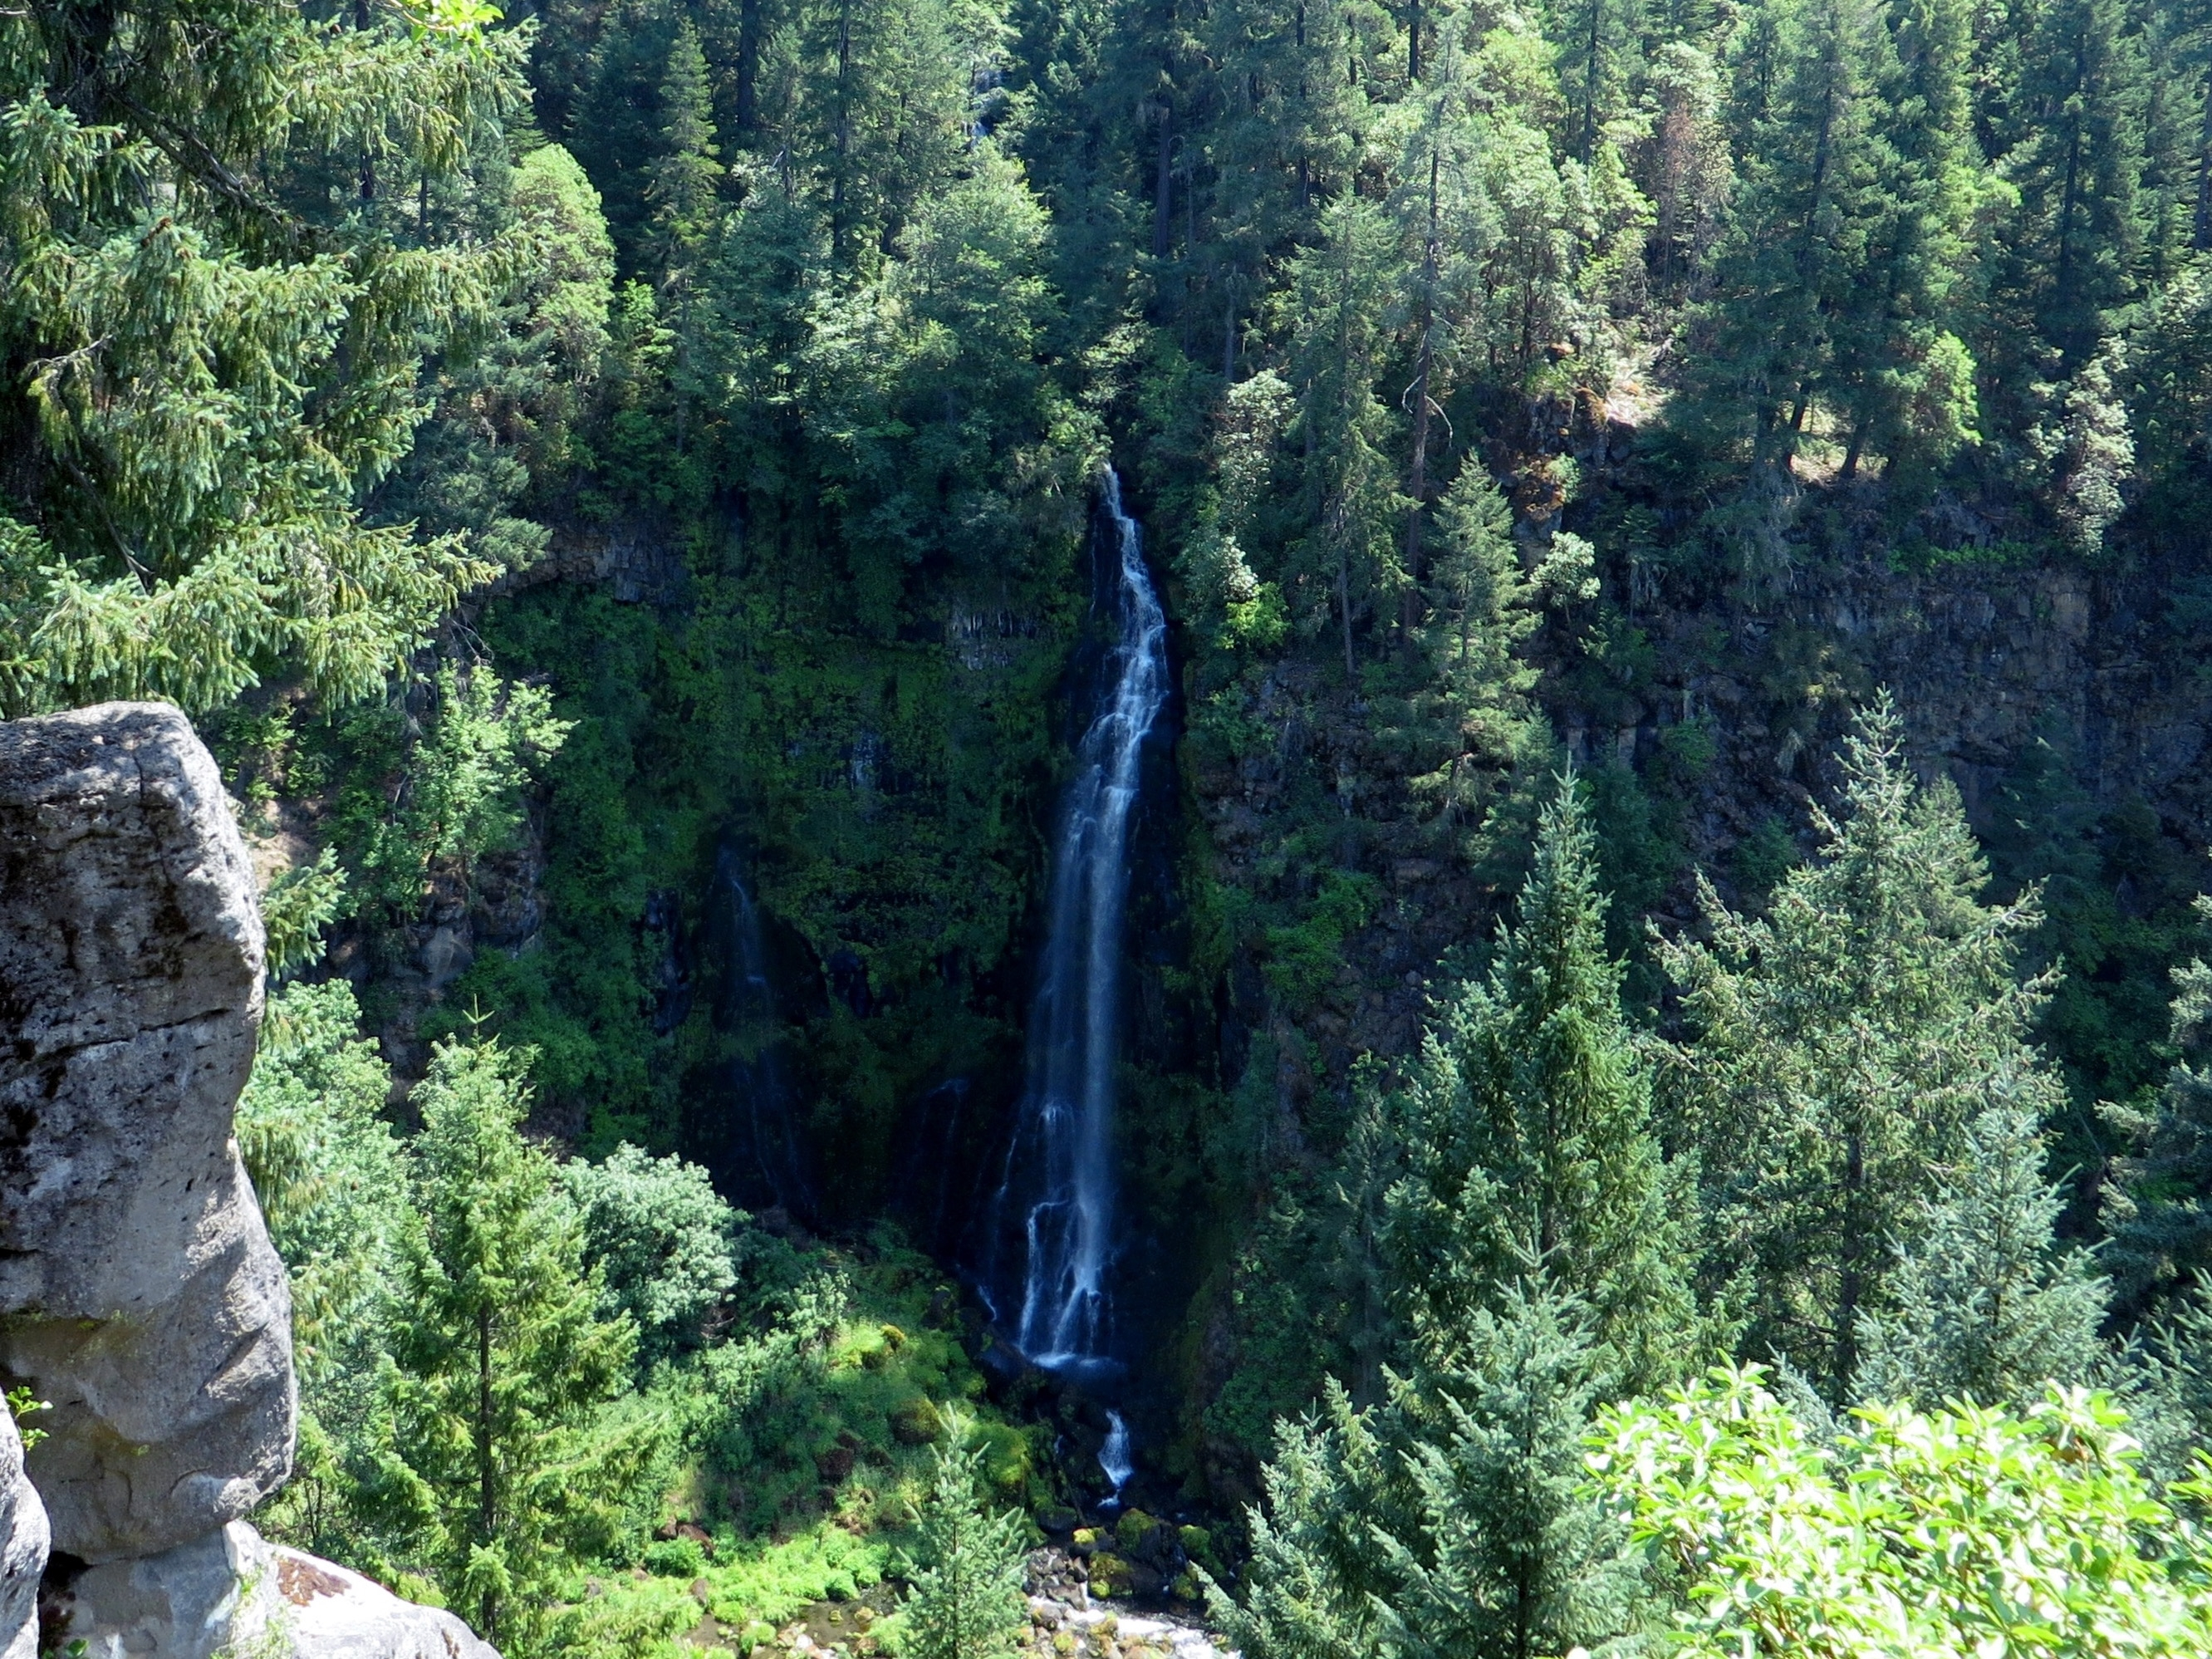 Barr Creek Falls tumble more than 150 vertical feet into the Rogue River. (photo by D. Speredelozzi)